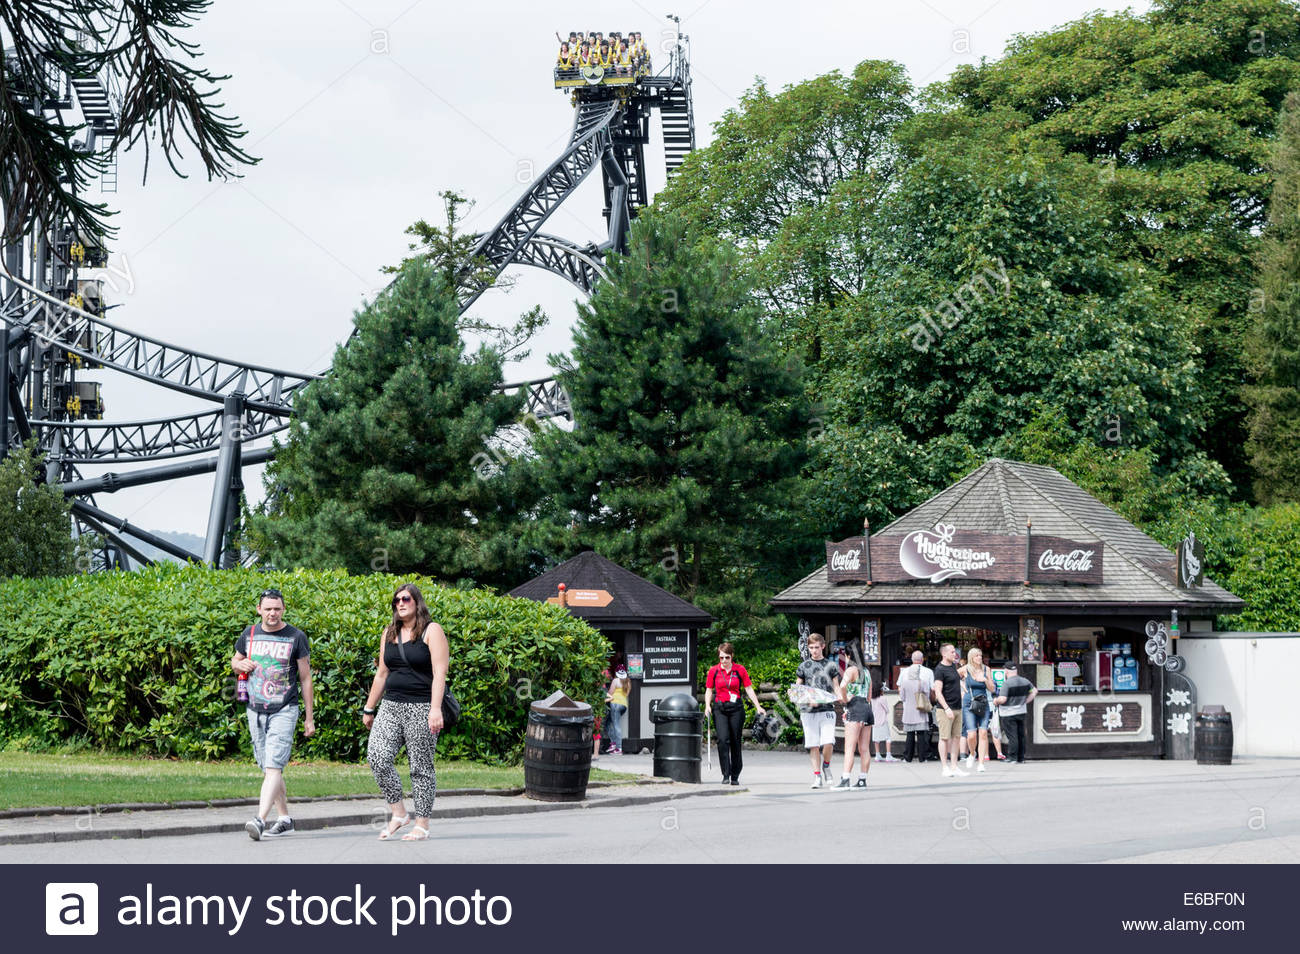 coca-cola-refreshment-kiosk-in-the-grounds-of-alton-towers